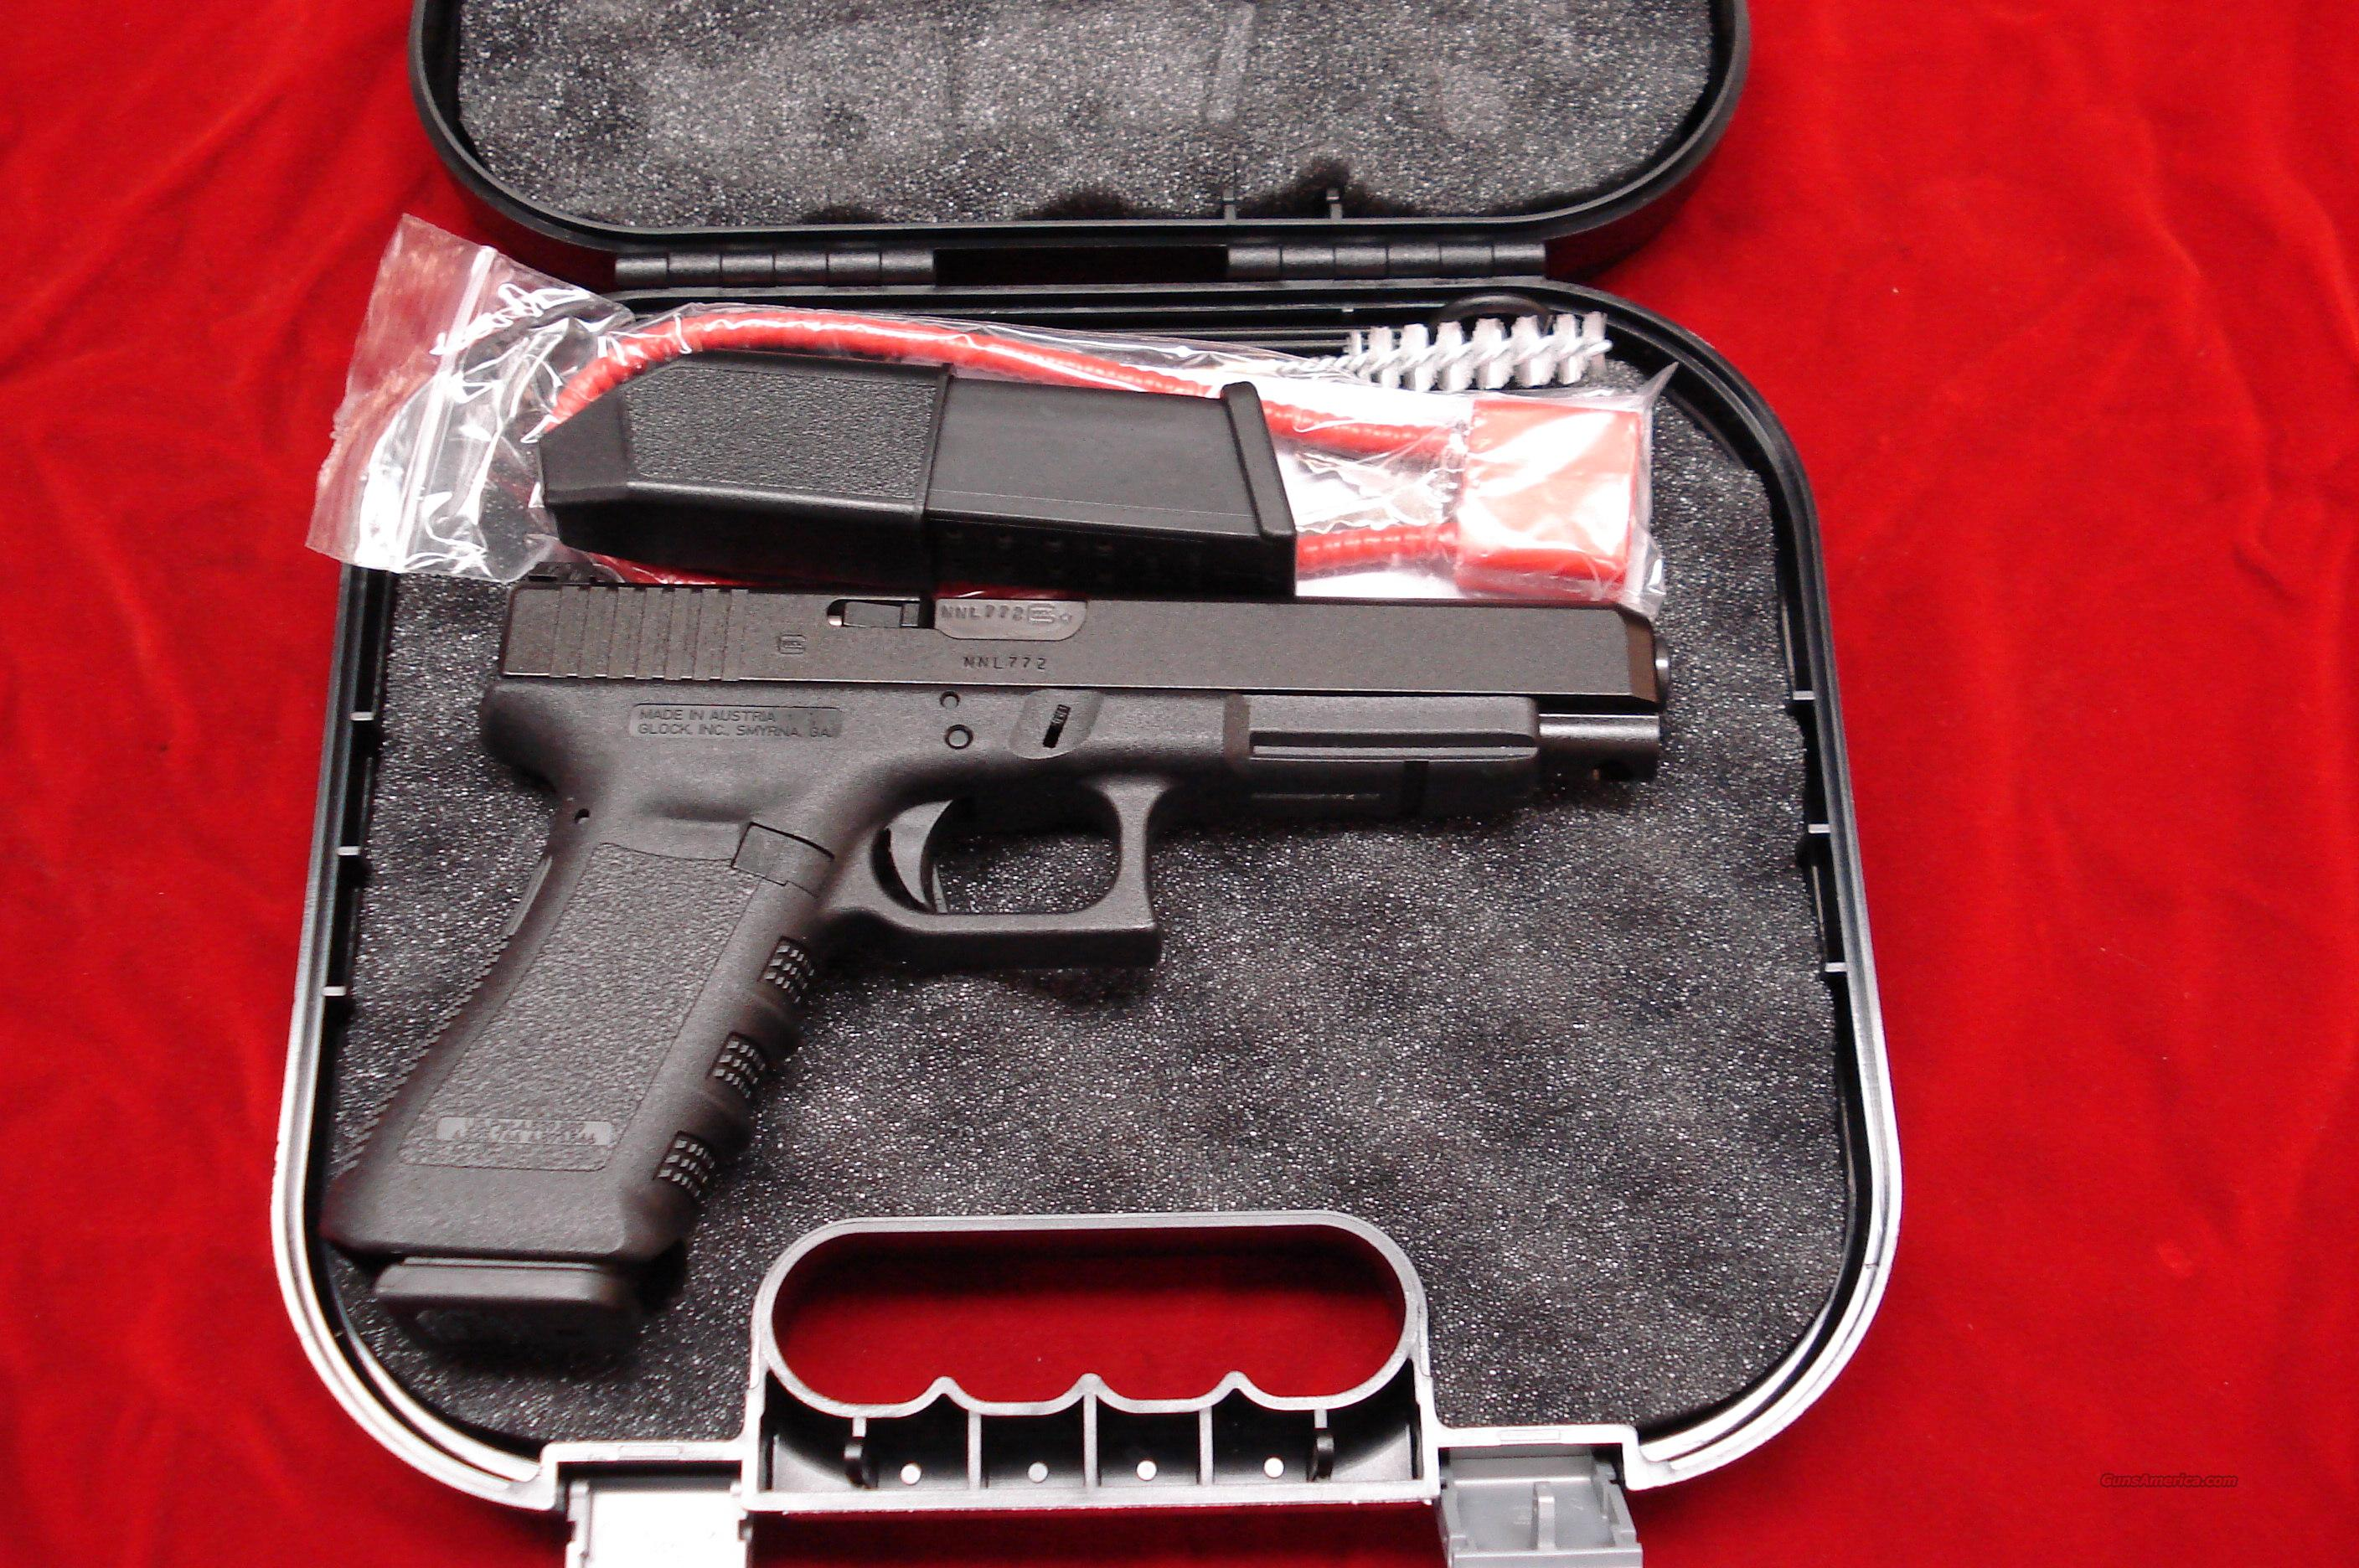 Glock Model 34 9mm Tactical Practical New For Sale